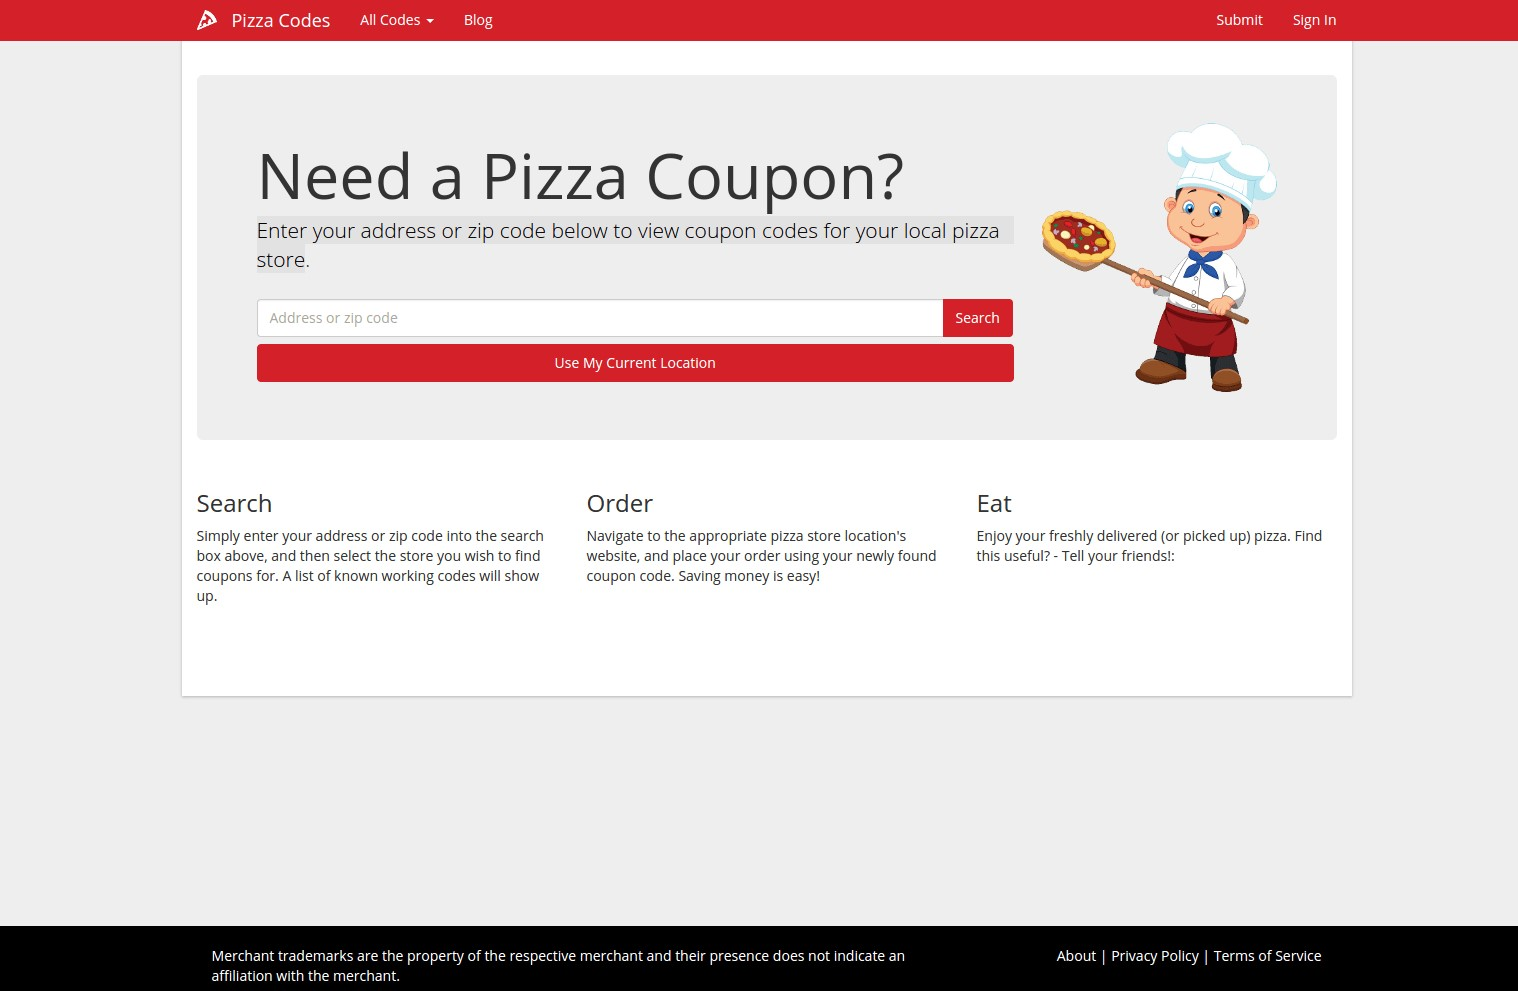 Pizza coupons hell game forum